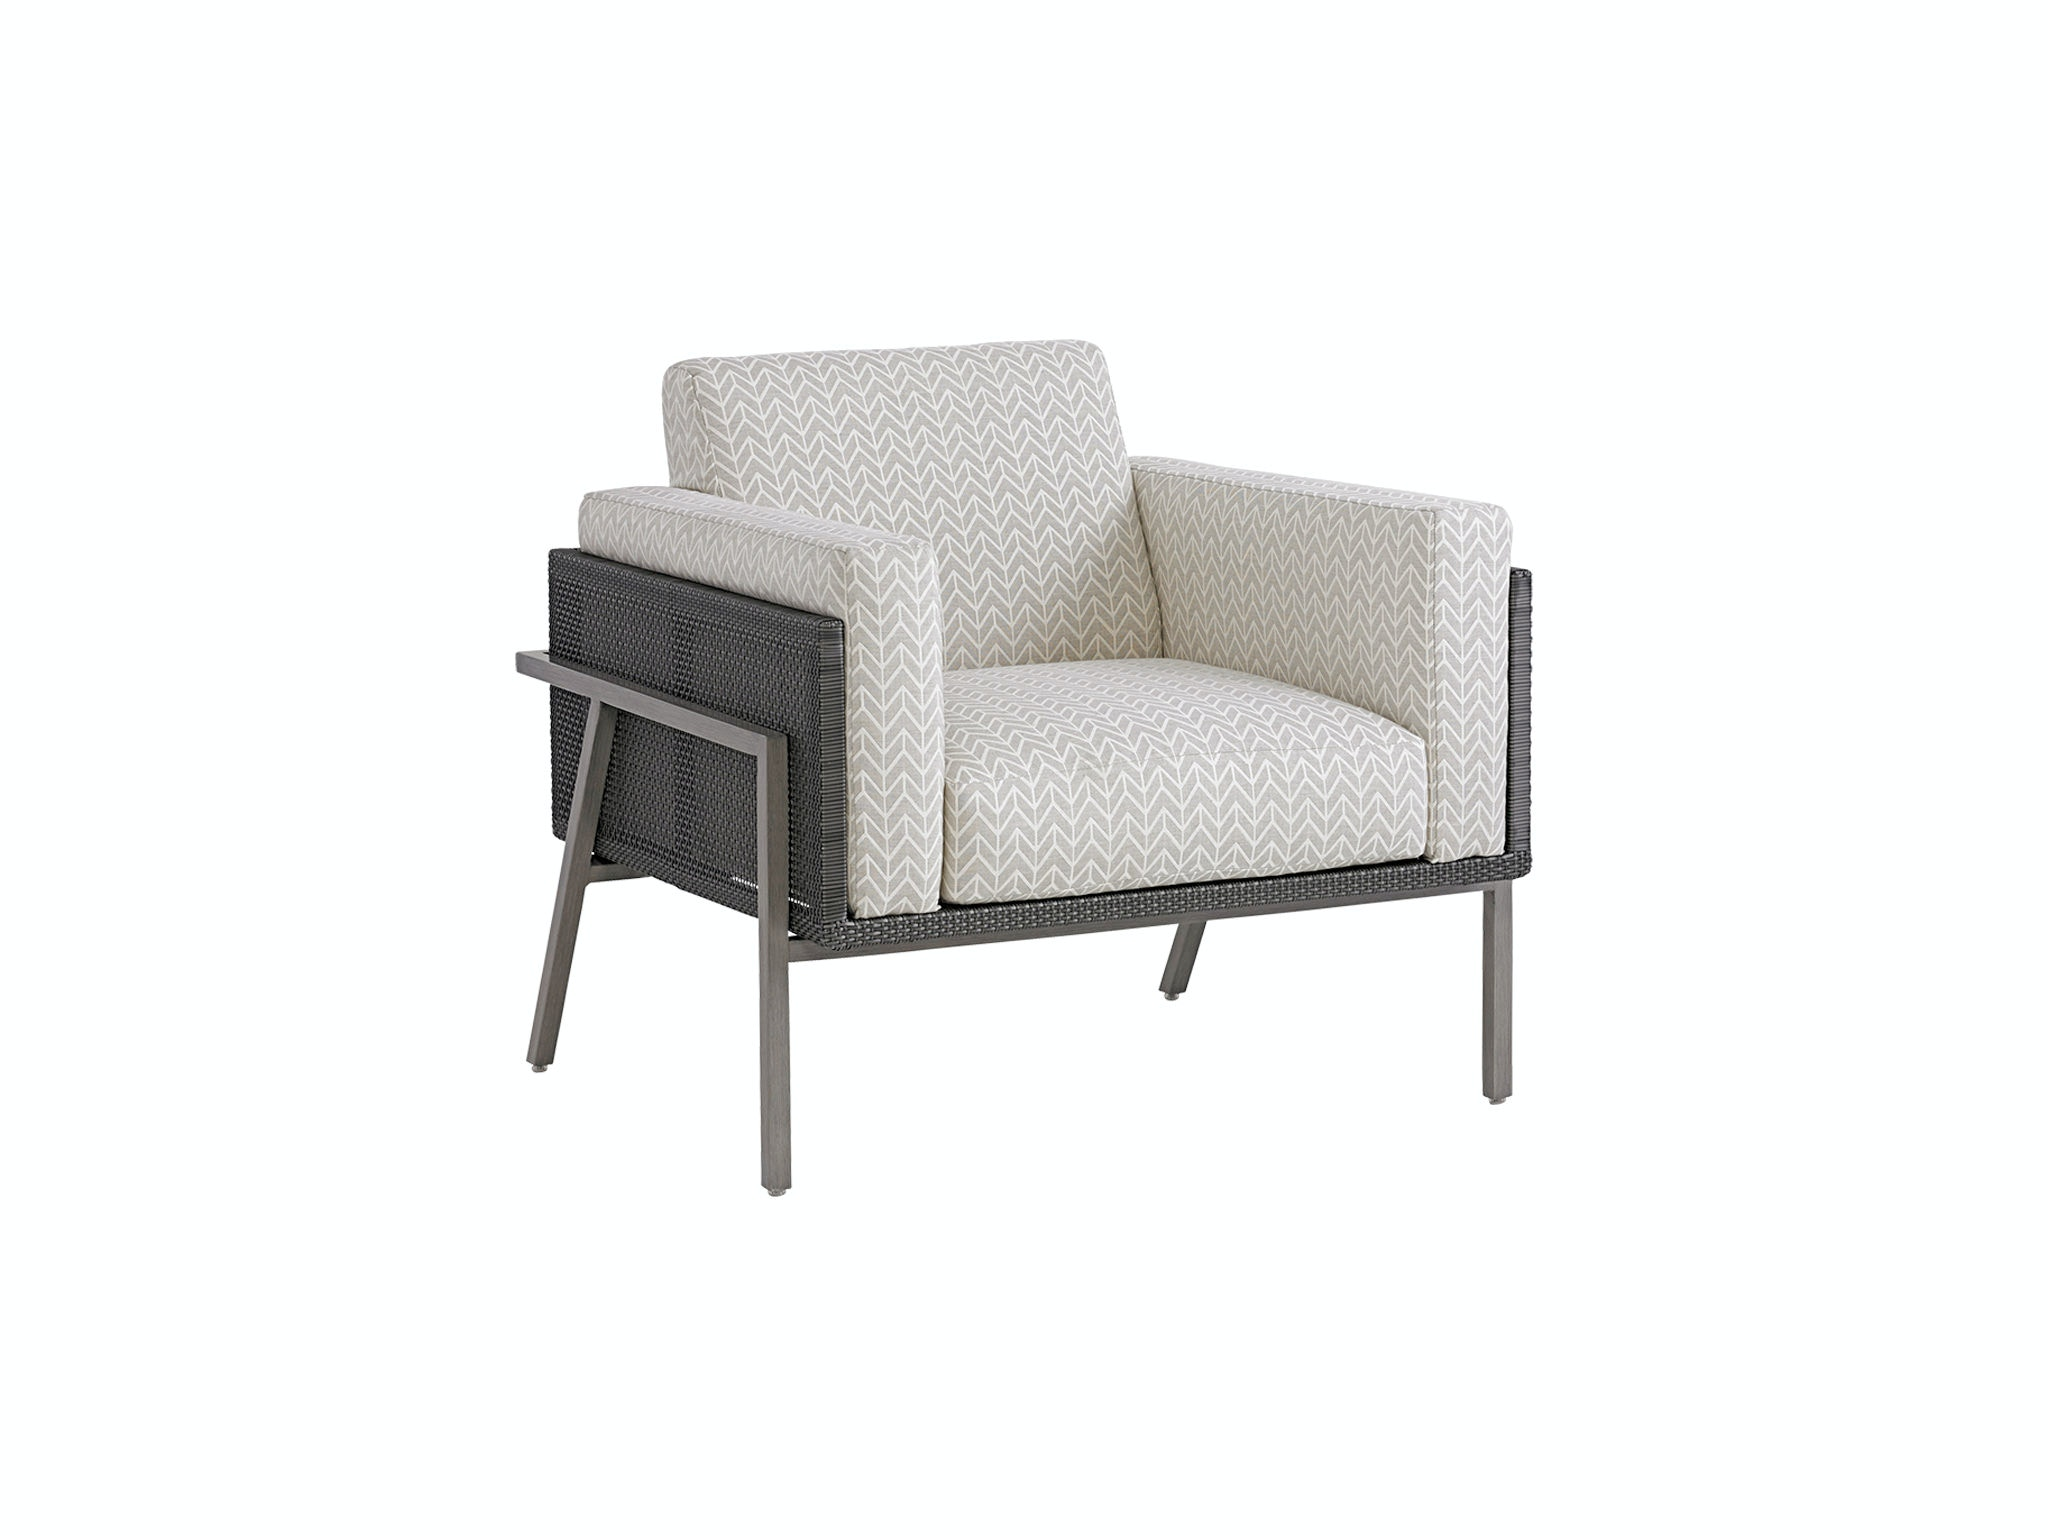 Tommy Bahama Outdoor Lounge Chair 3800 11